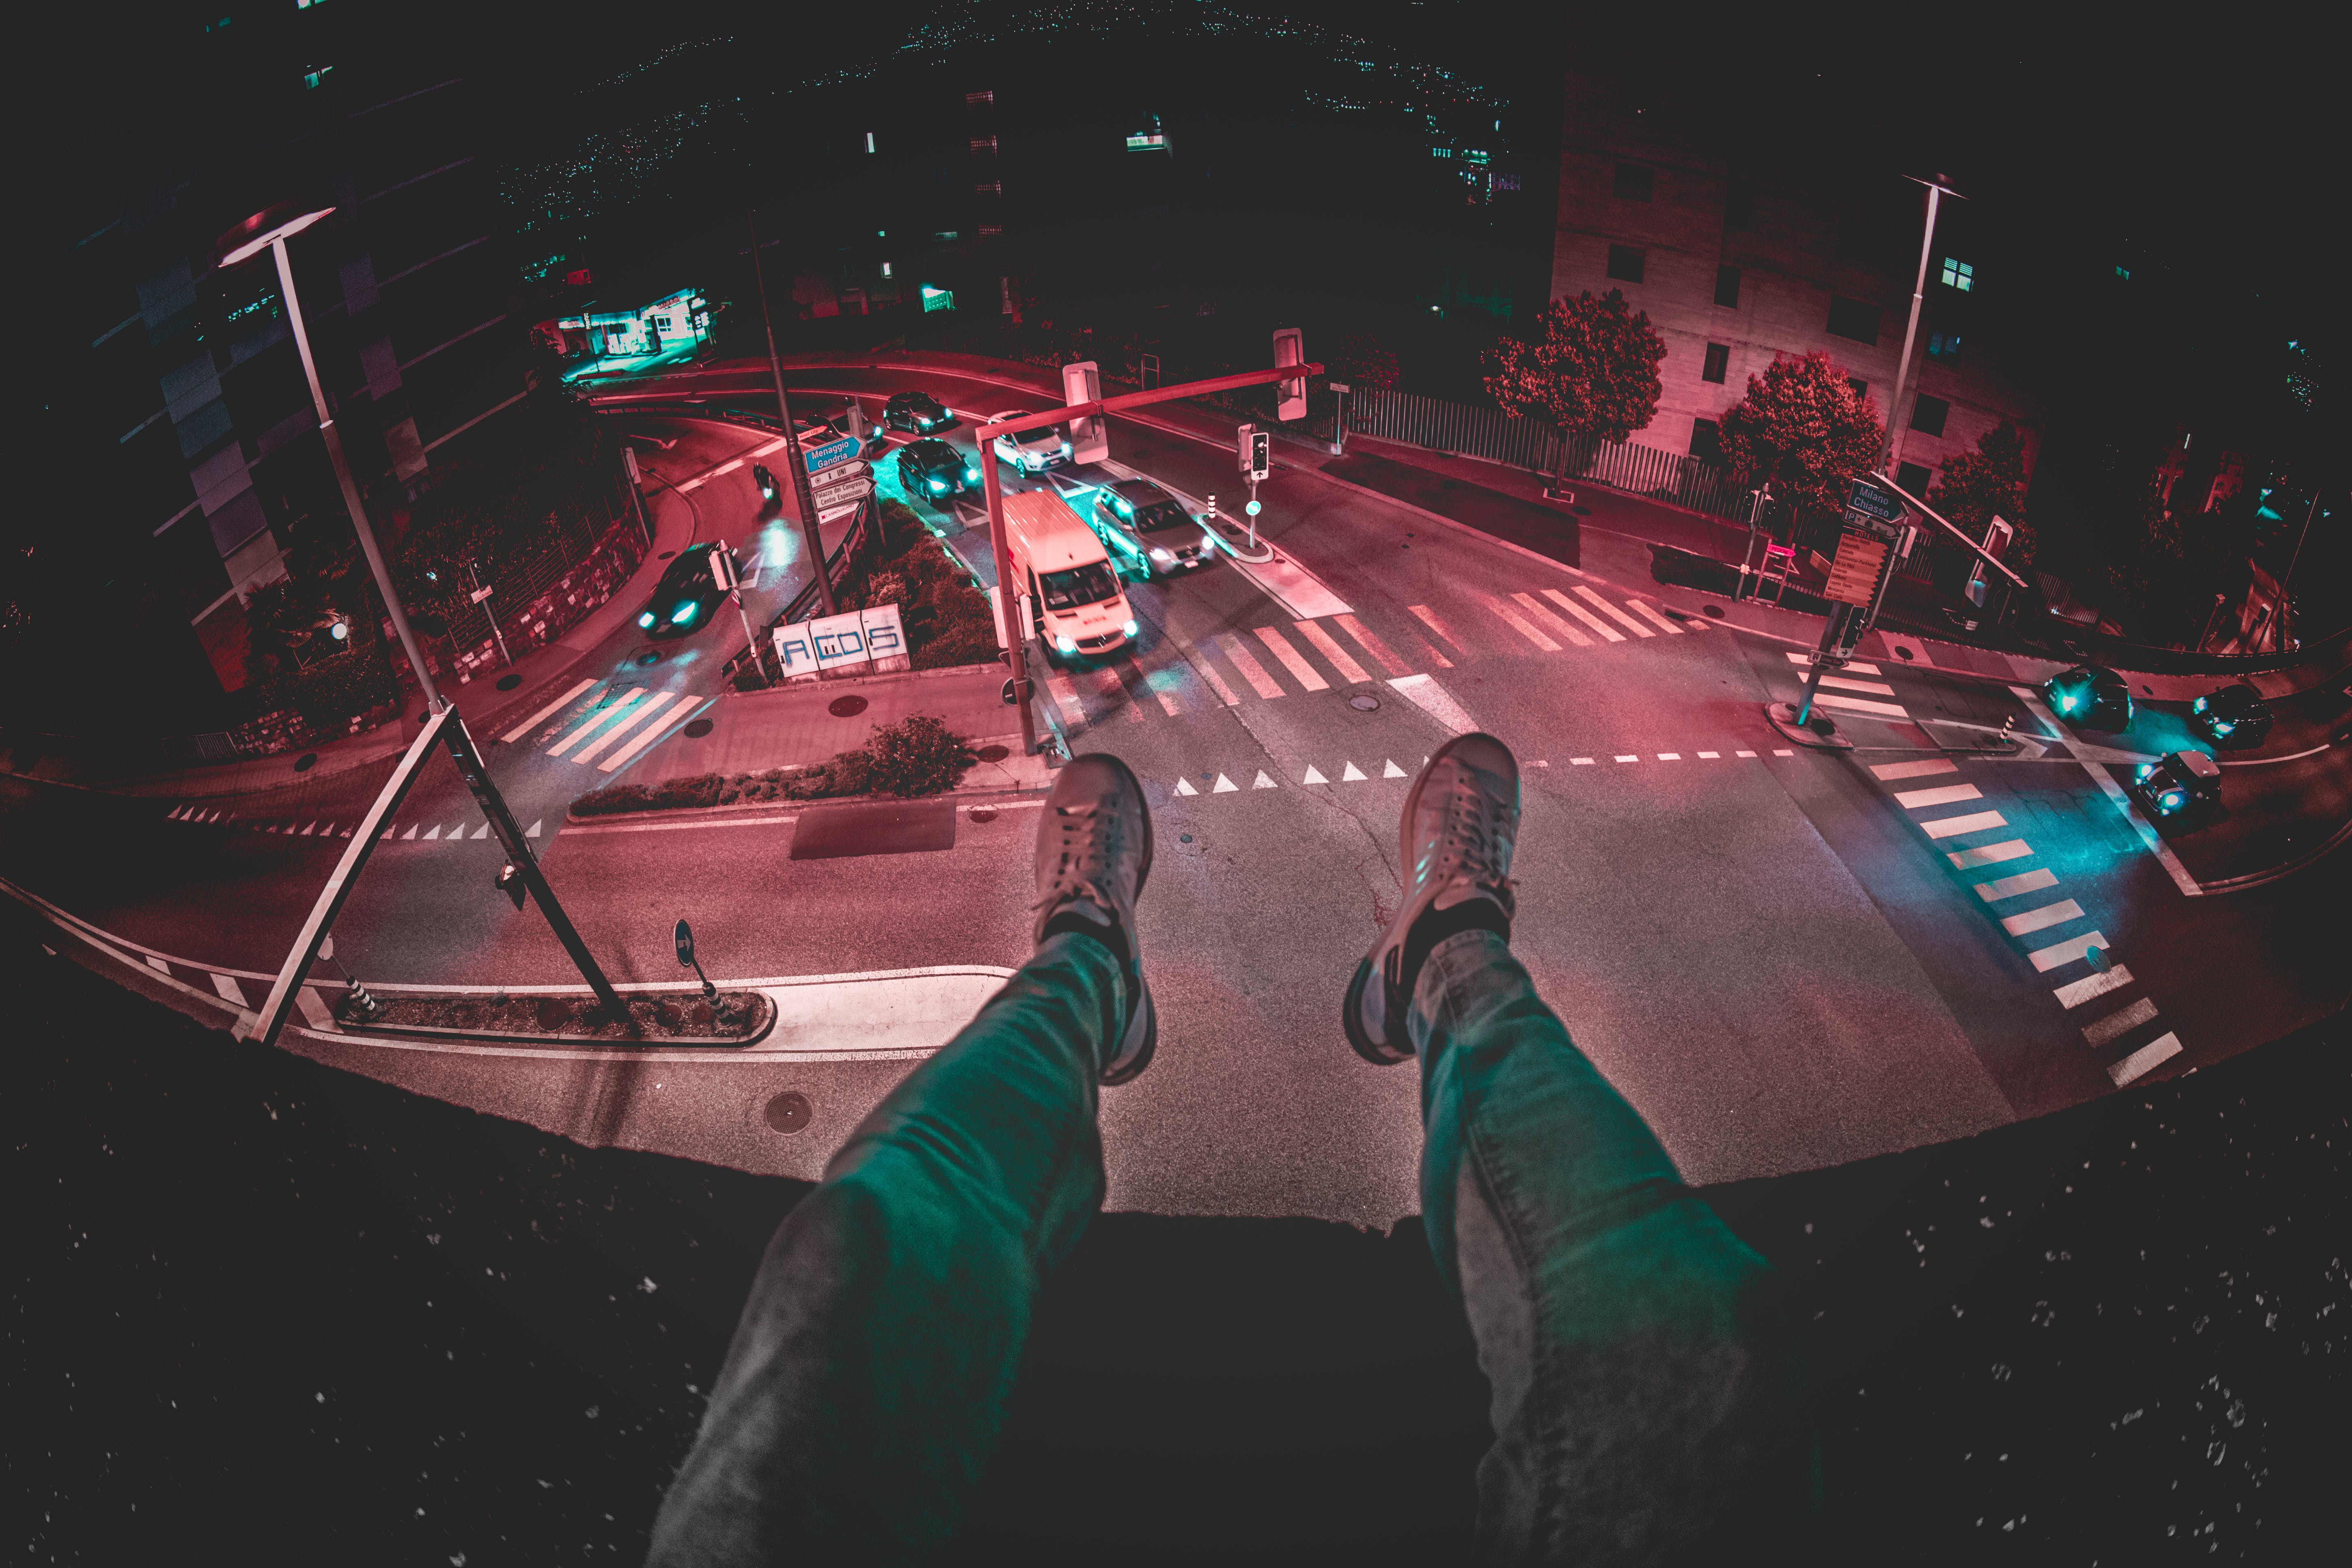 Person Sits on Building during Nighttime